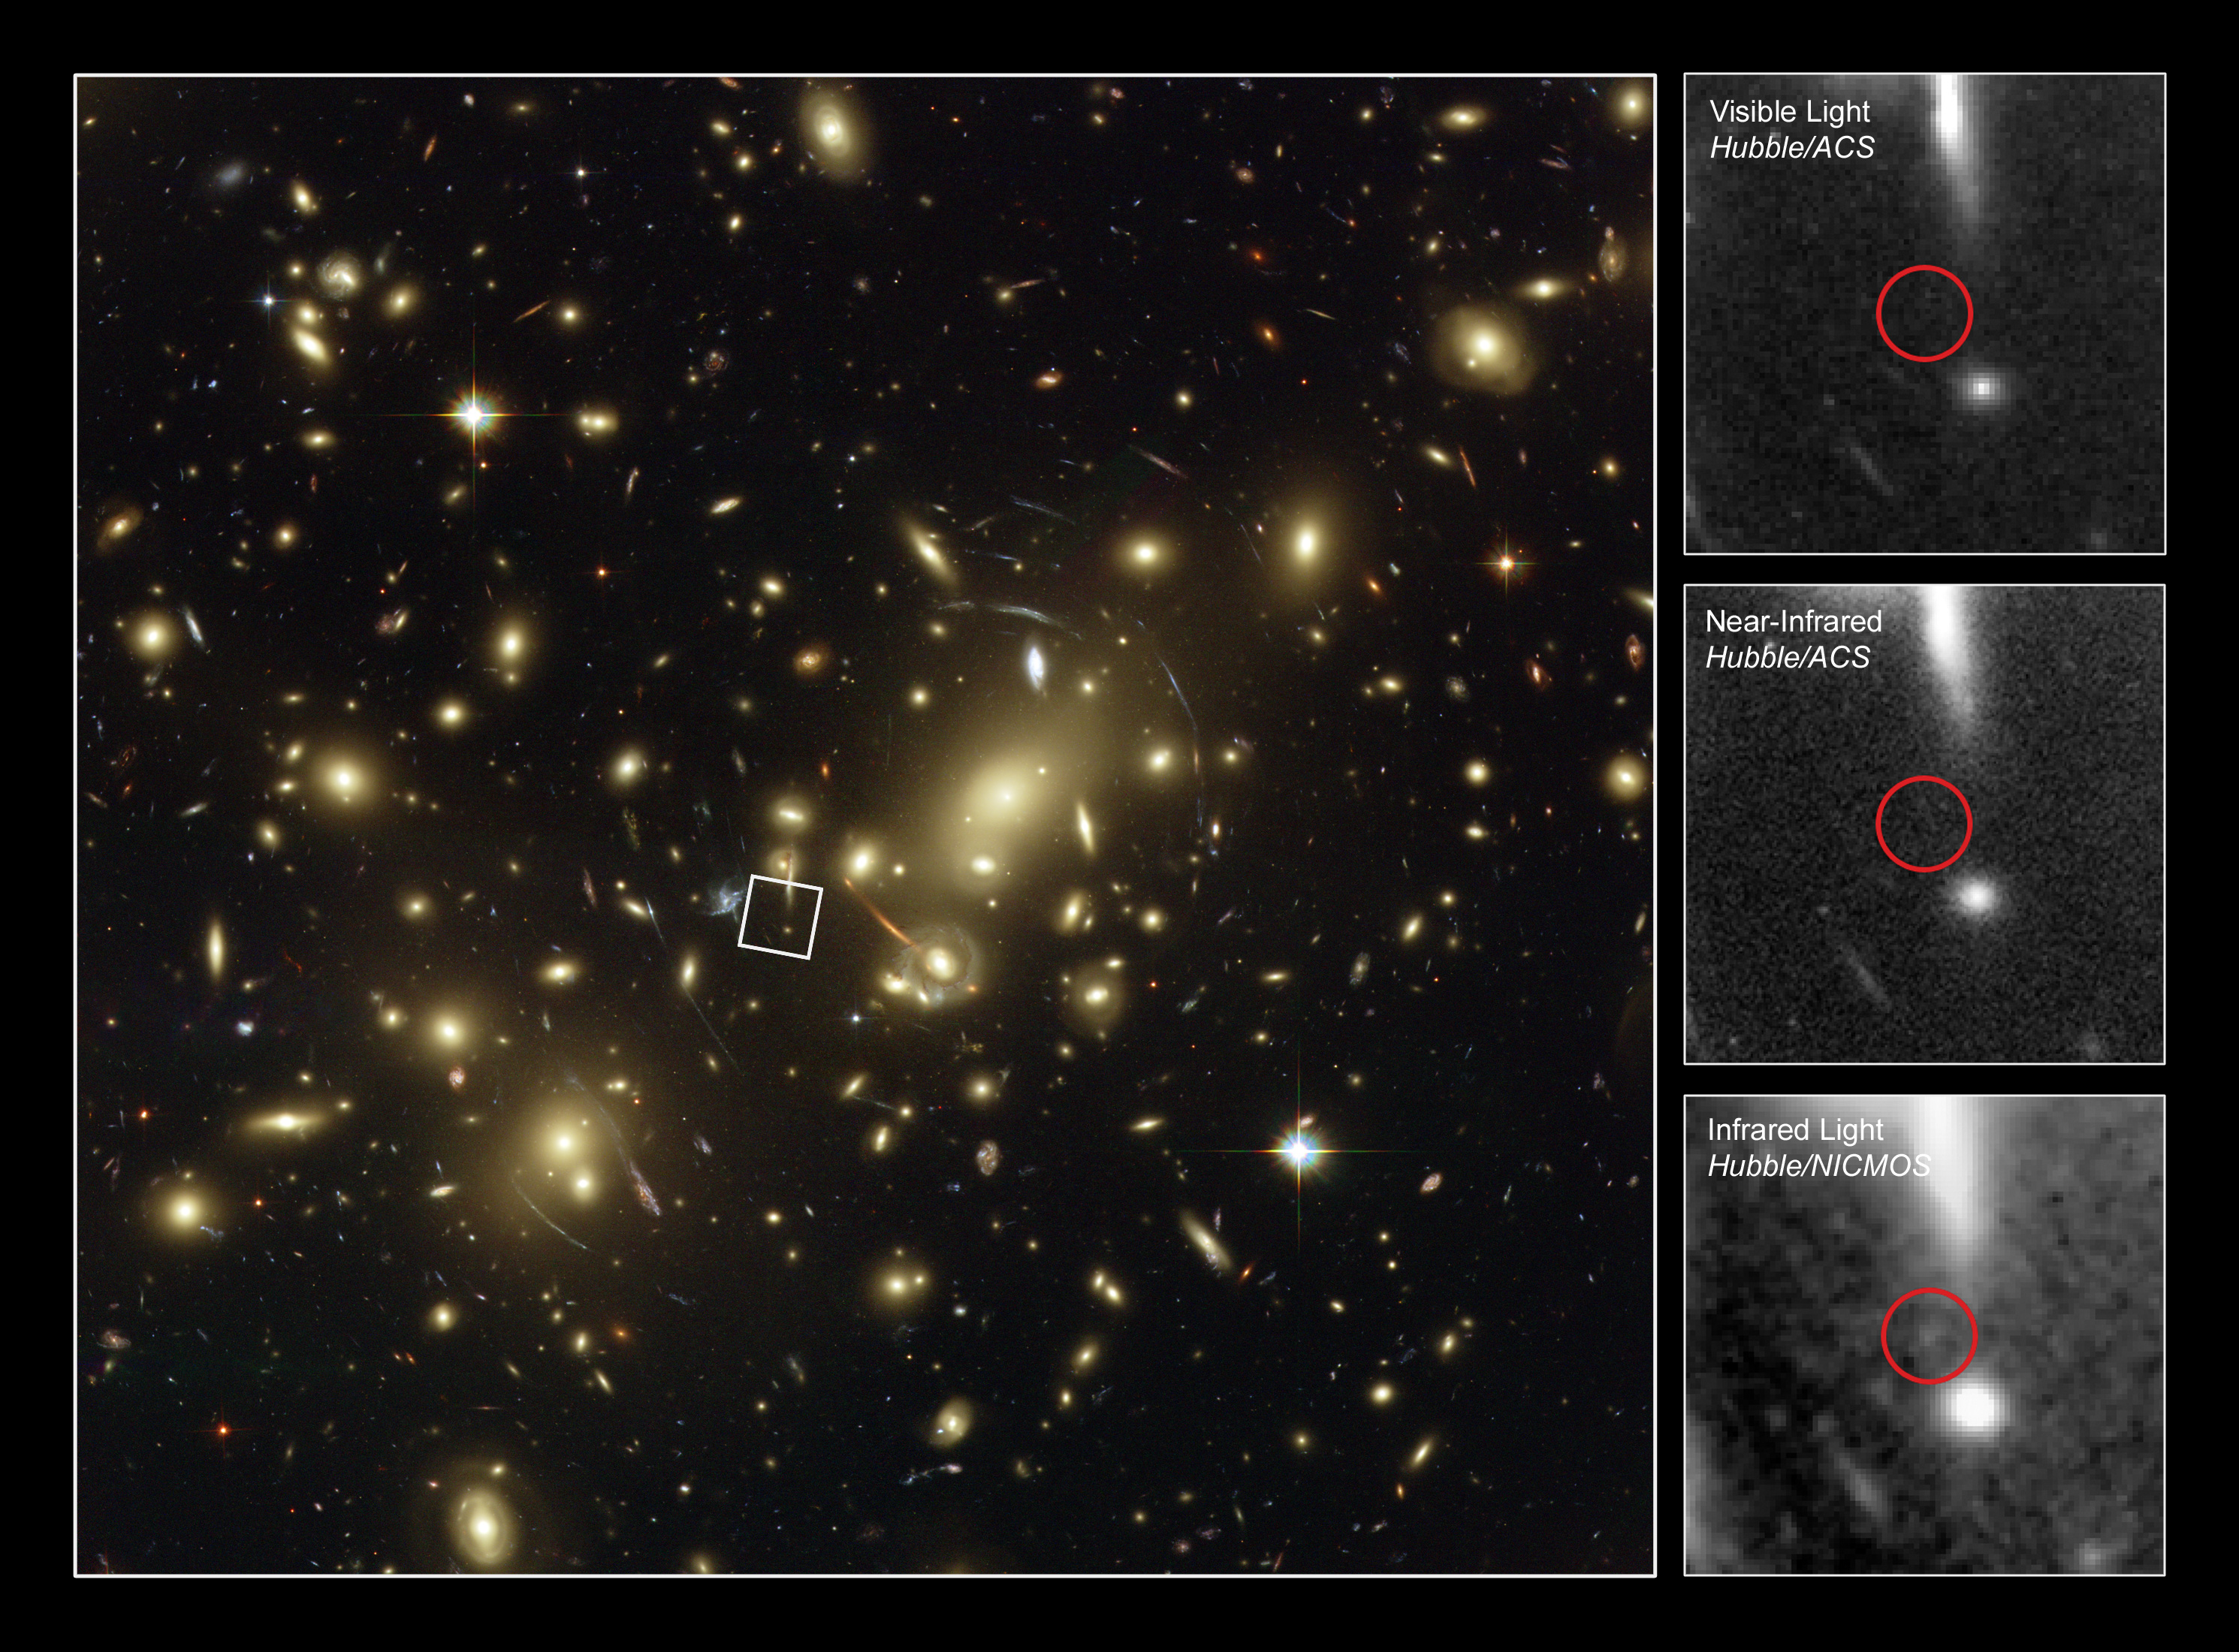 File:Abell 2218 z1 (very distant galaxy).jpg